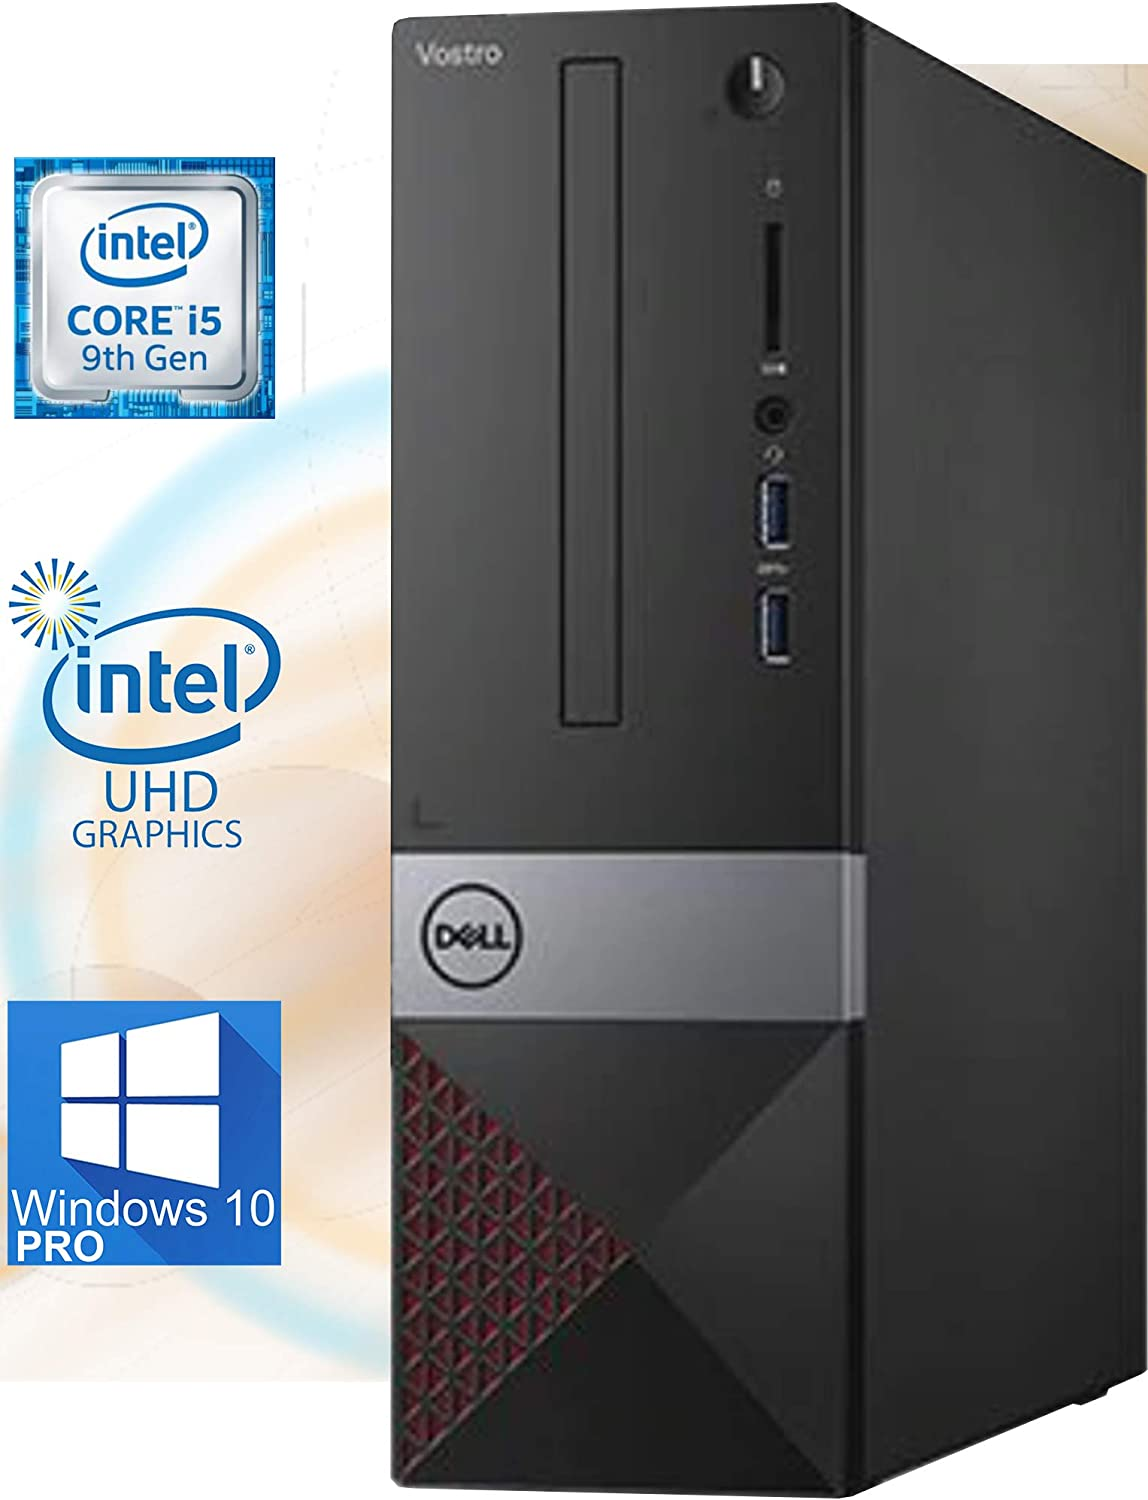 Dell Vostro 3471 Small Form Factor Desktop with Intel Core i5-9400 Upto 4.1GHz, Intel UHD Graphics 630 4K Support, 8GB RAM, 256GB M.2 NVMe SSD, HDMI, Wi-Fi, Bluetooth - Windows 10 Pro